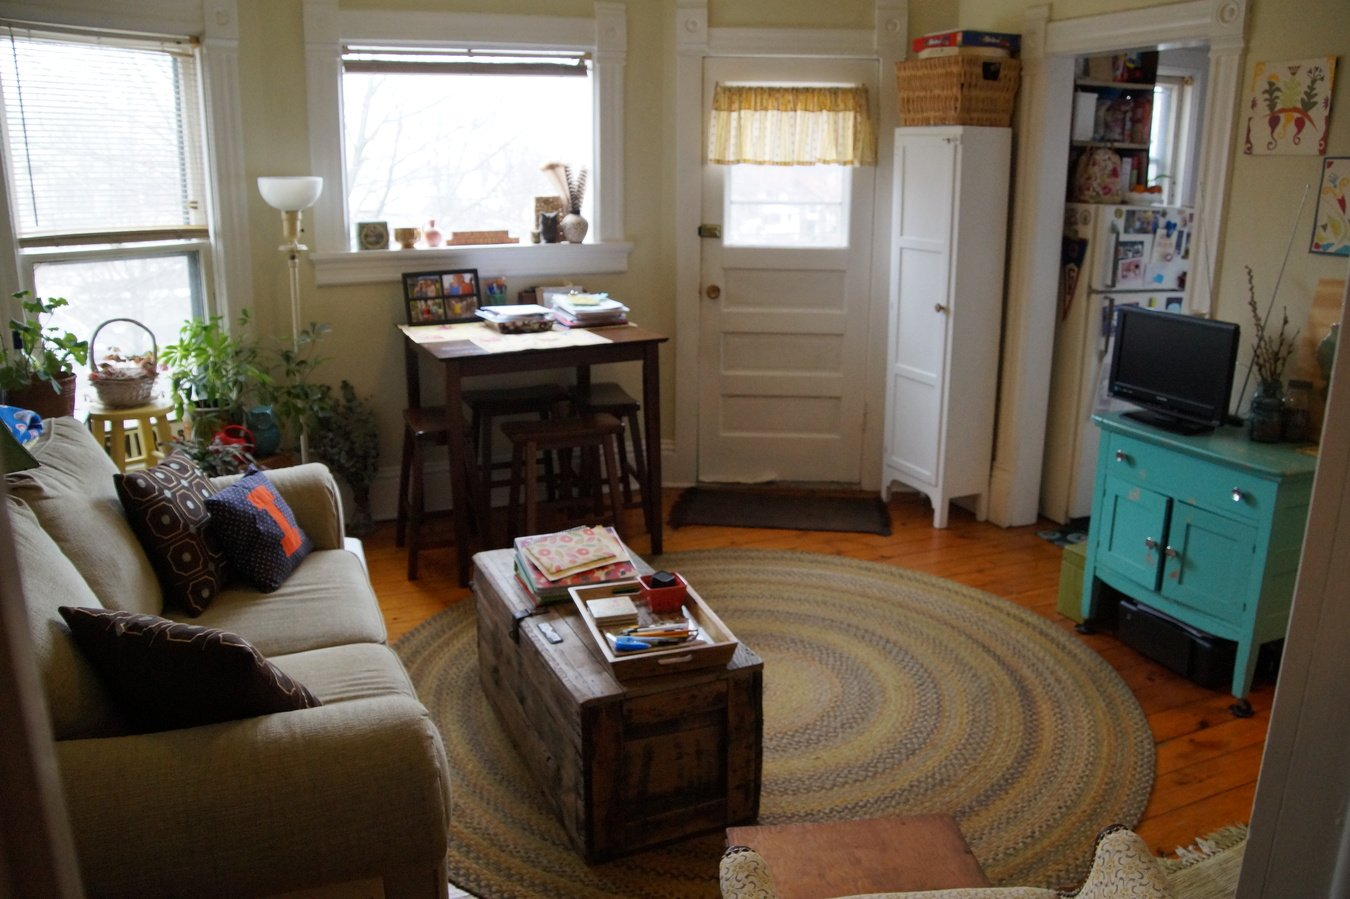 1 Bedroom 1 Bathroom Apartment for rent at 947 E Gorham in Madison, WI